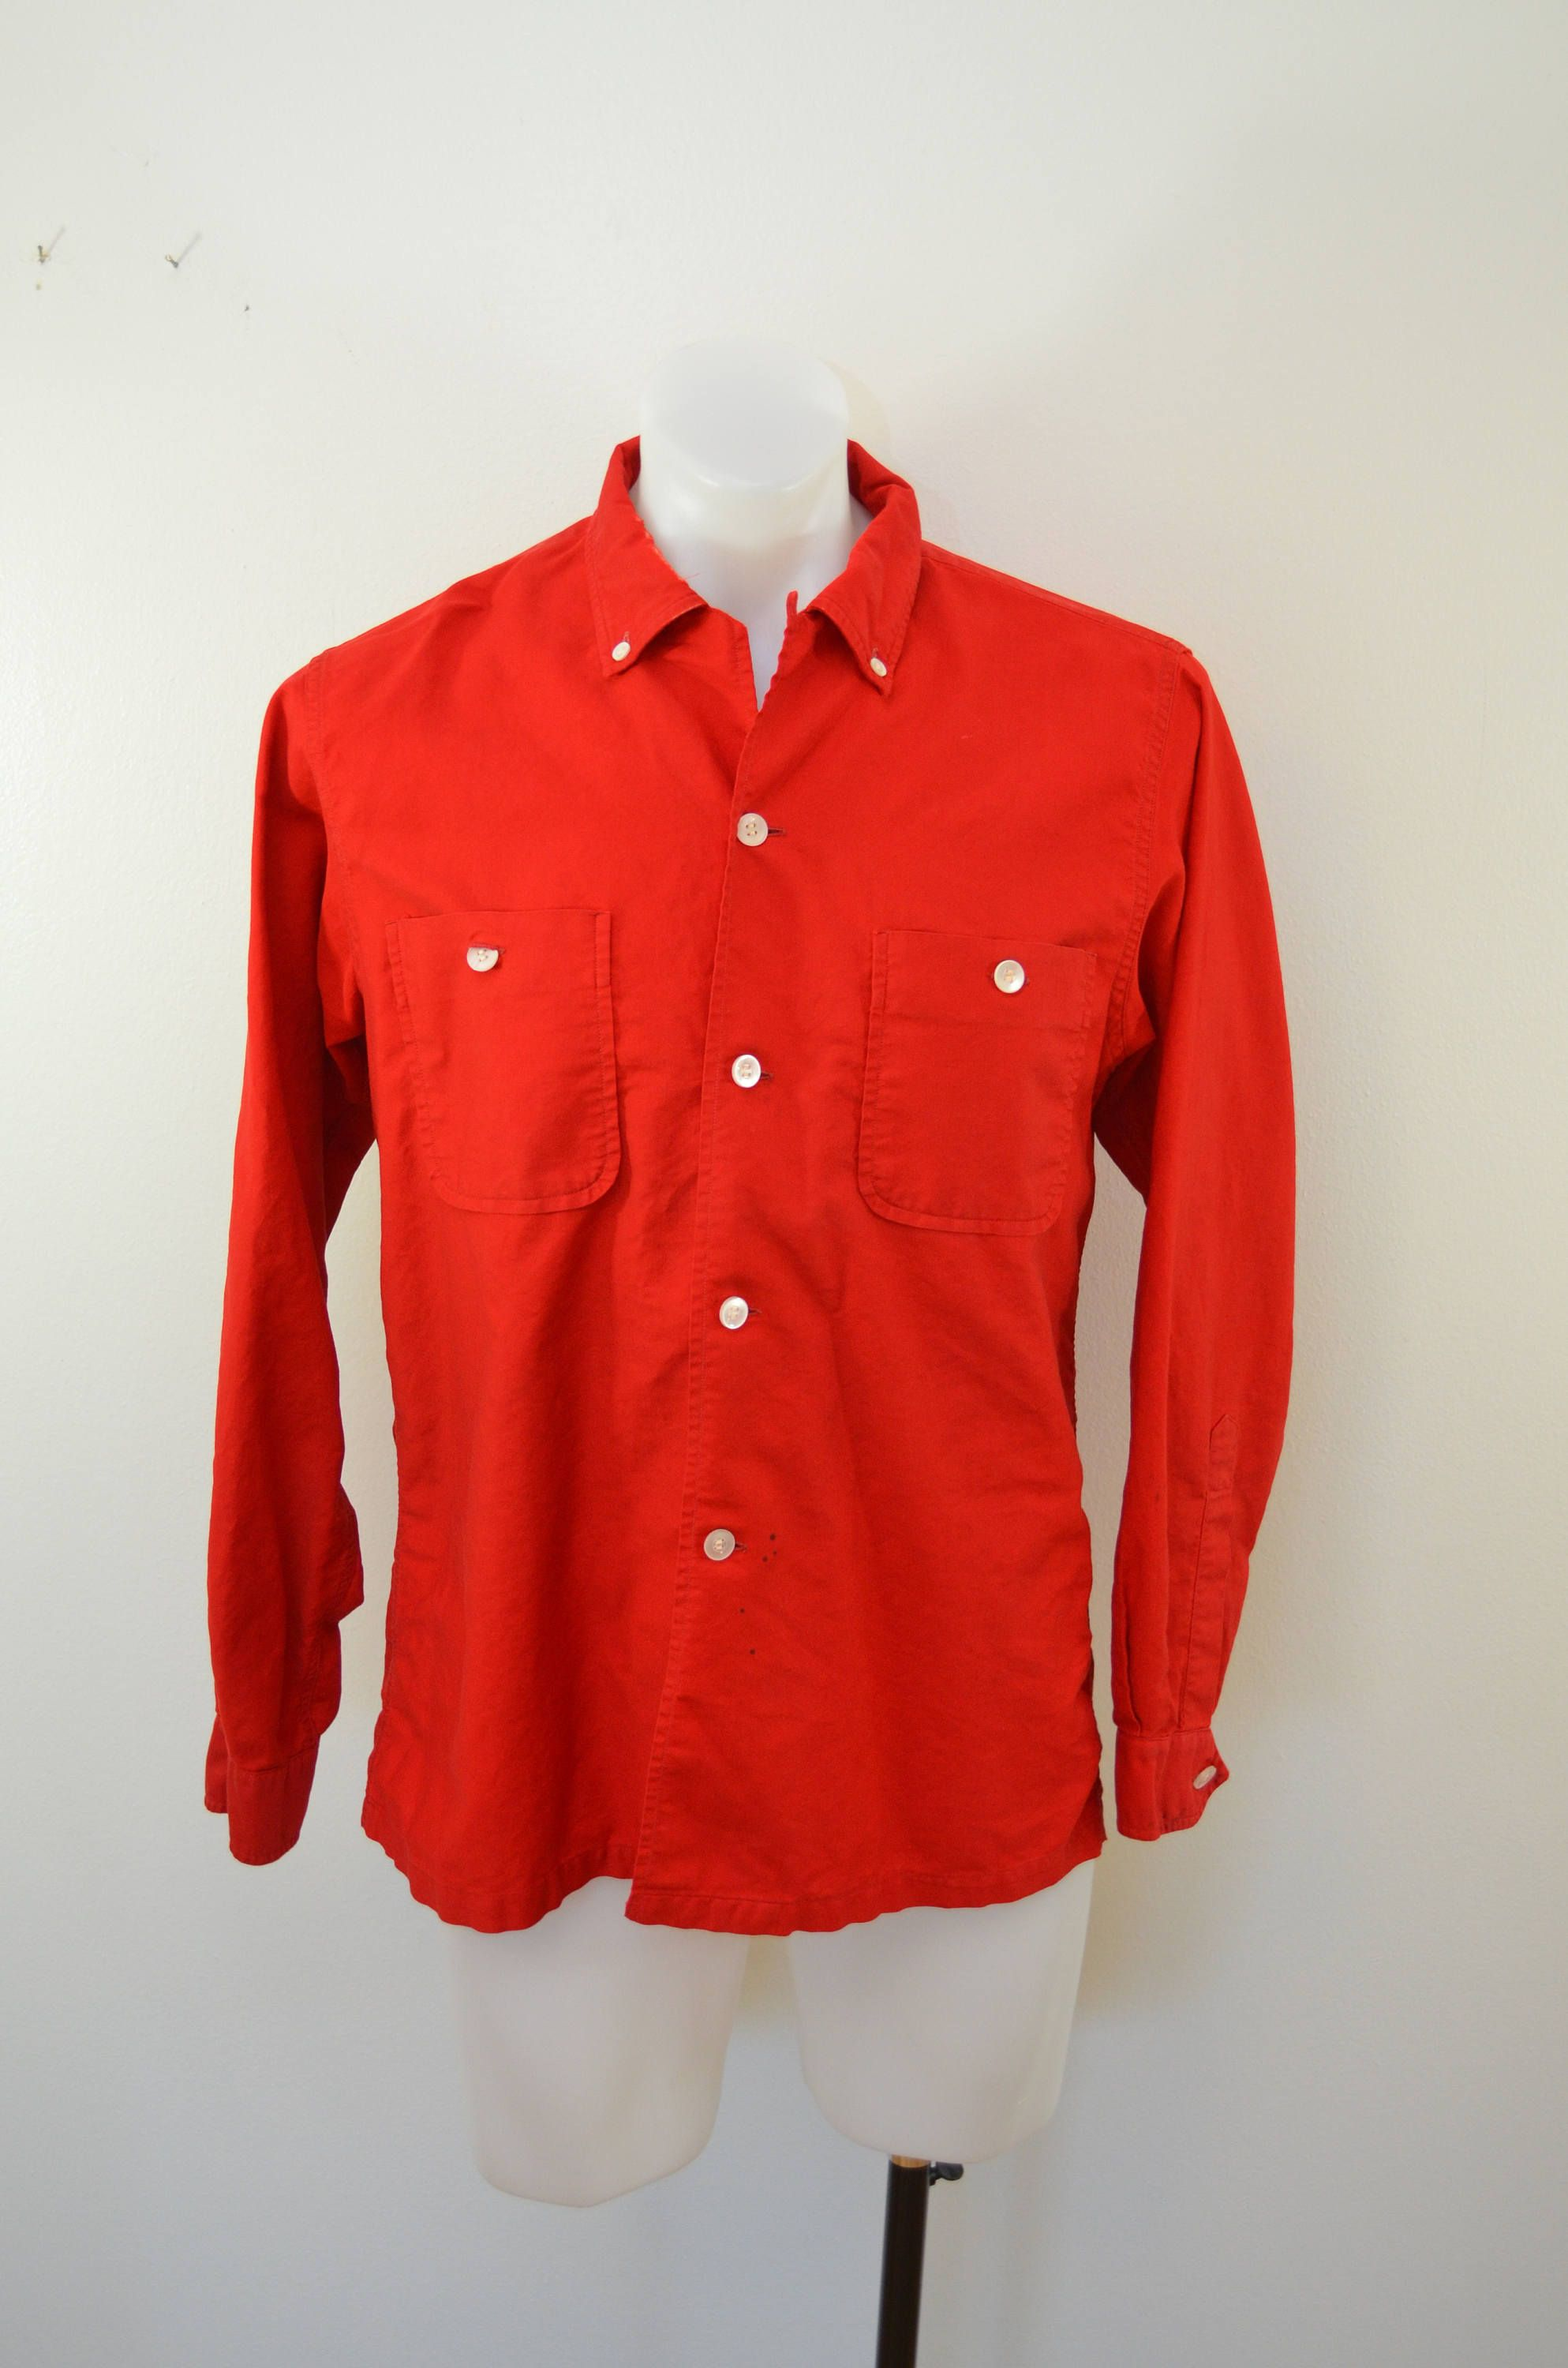 ba5551e6f543b Vintage SISSON S Milwaukee button down long sleeve shirt 1930 s 40 s USA  Medium by ilovevintagestuff on Etsy